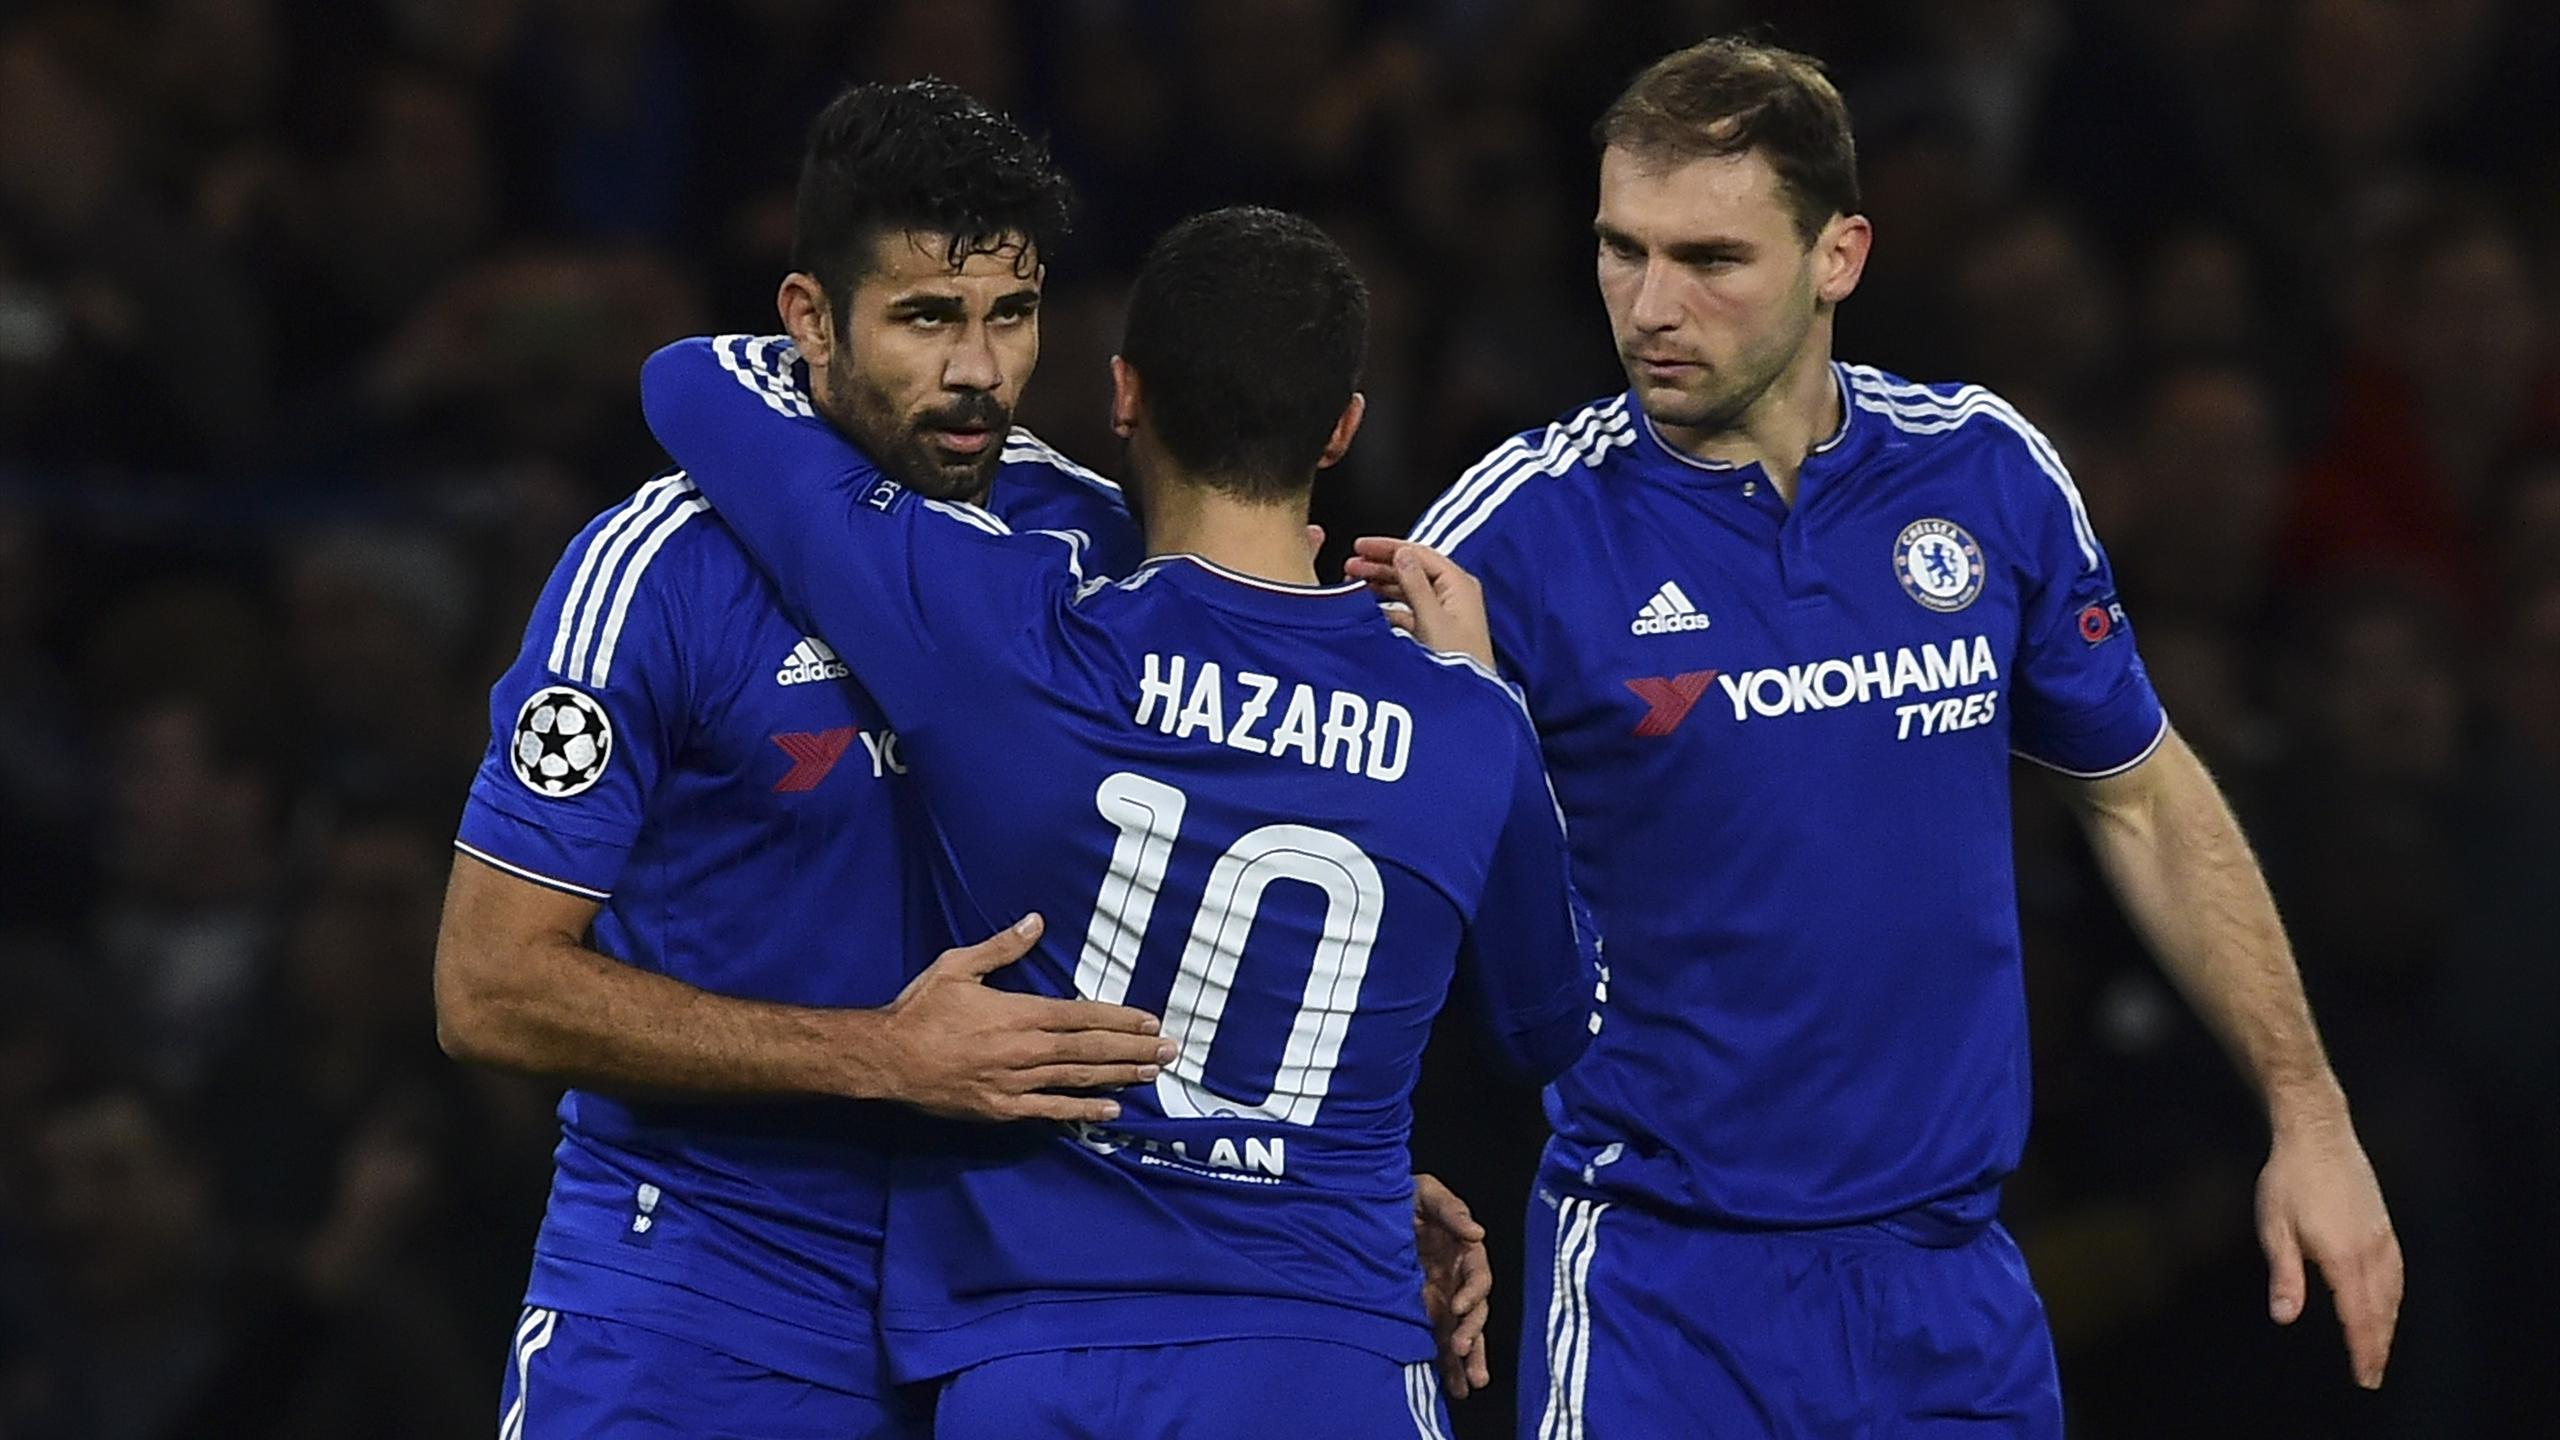 Chelsea's Belgian midfielder Eden Hazard (C) and Serbian defender Branislav Ivanovic (R) celebrate with striker Diego Costa against Porto